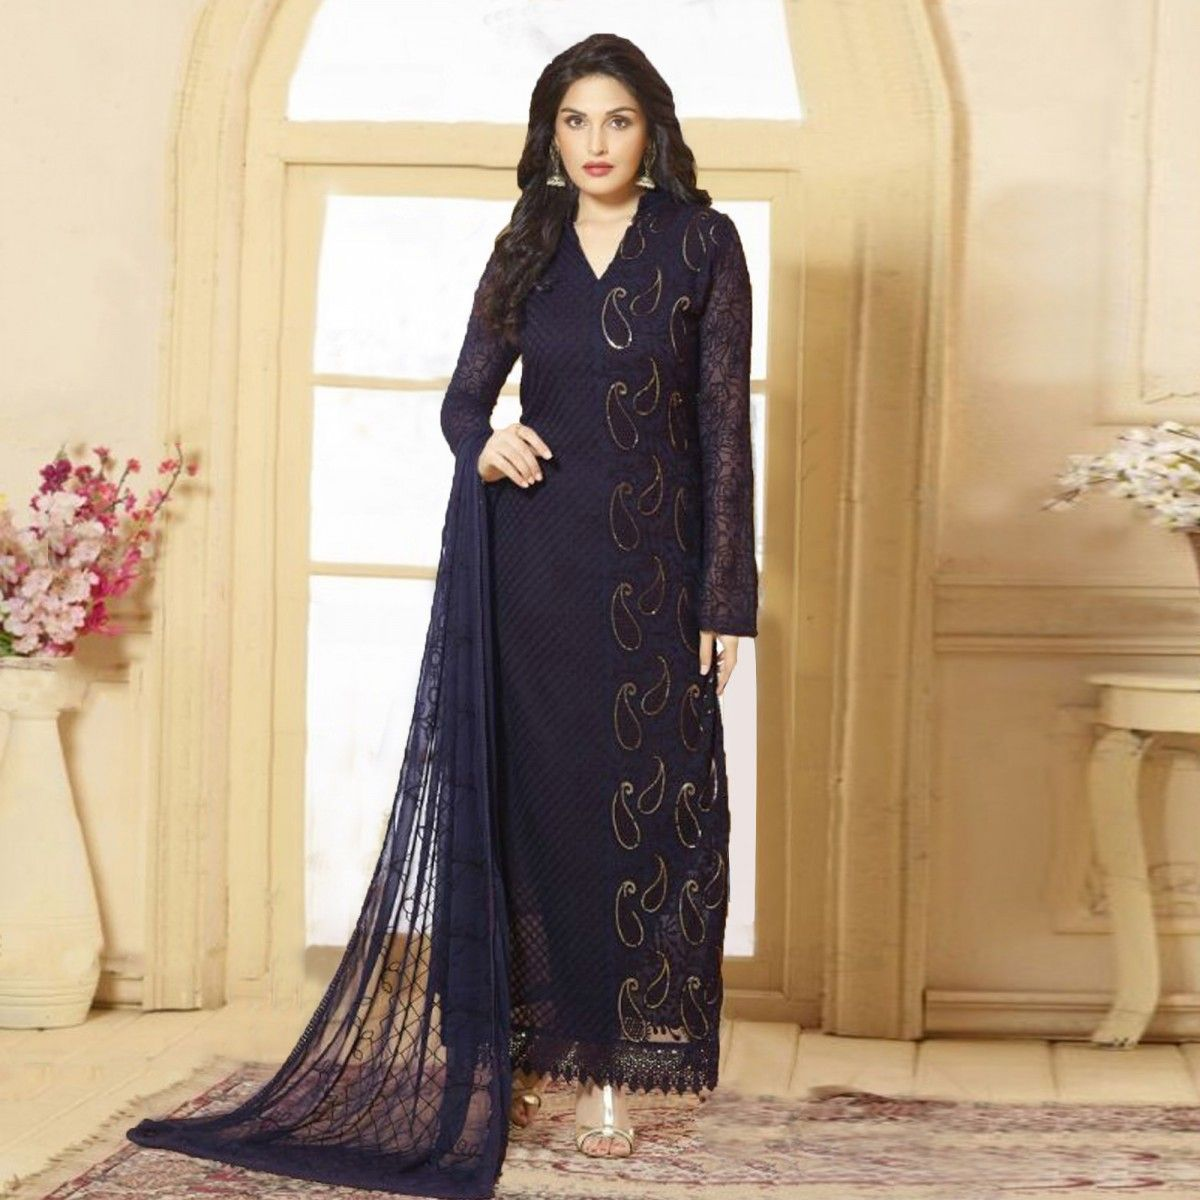 5aac527f2a Buy Navy Blue Straight Cut Karachi Suit for womens online India, Best  Prices, Reviews - Peachmode